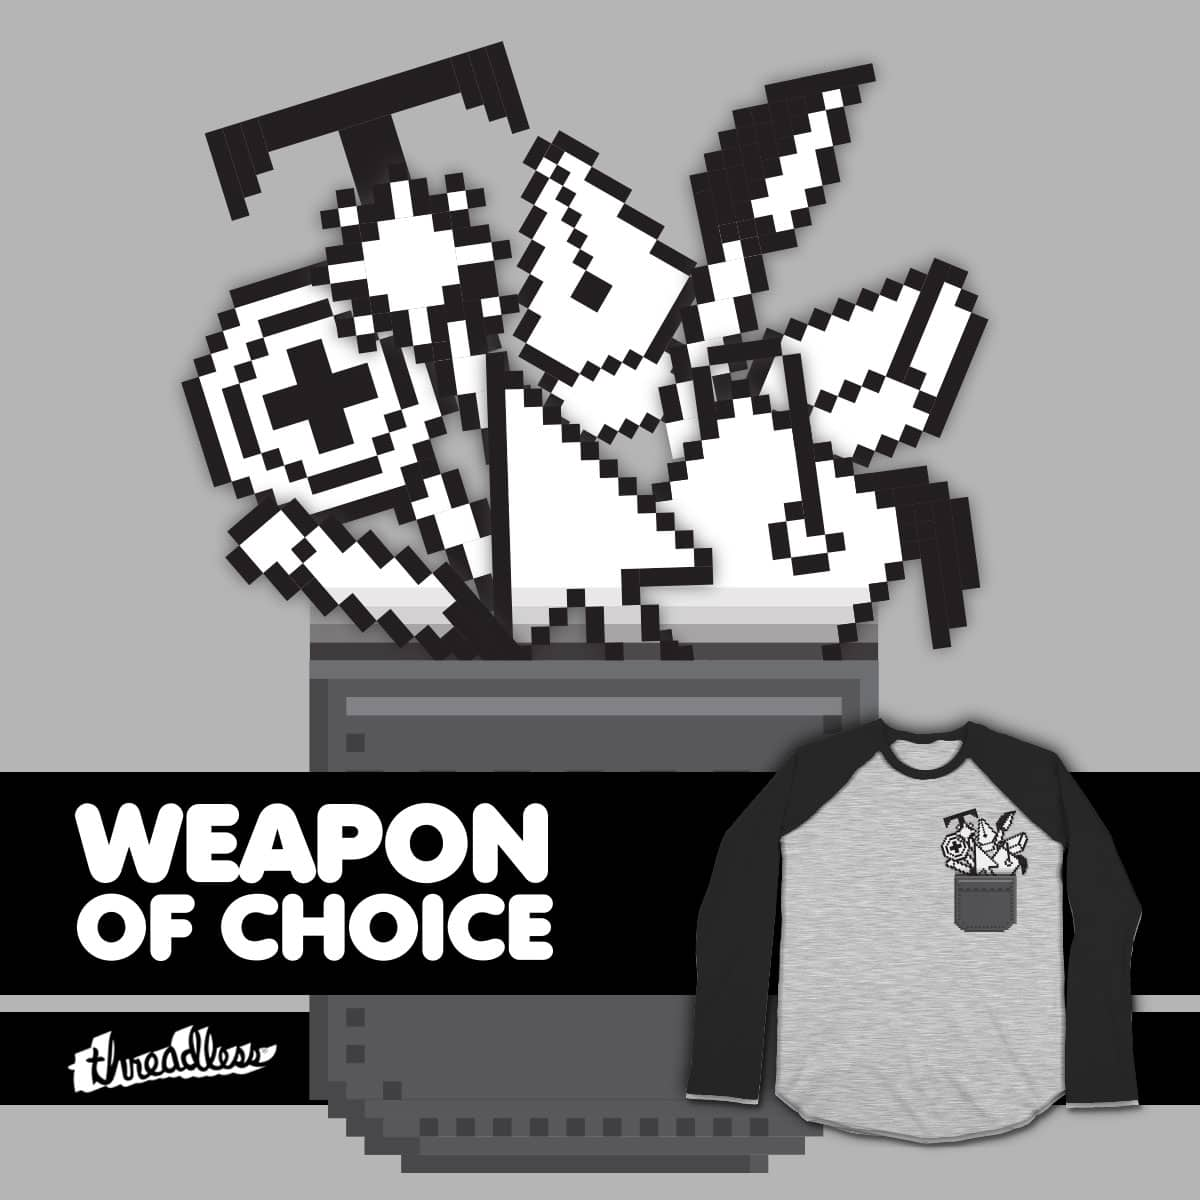 Weapon of Choice by rawpop90 on Threadless